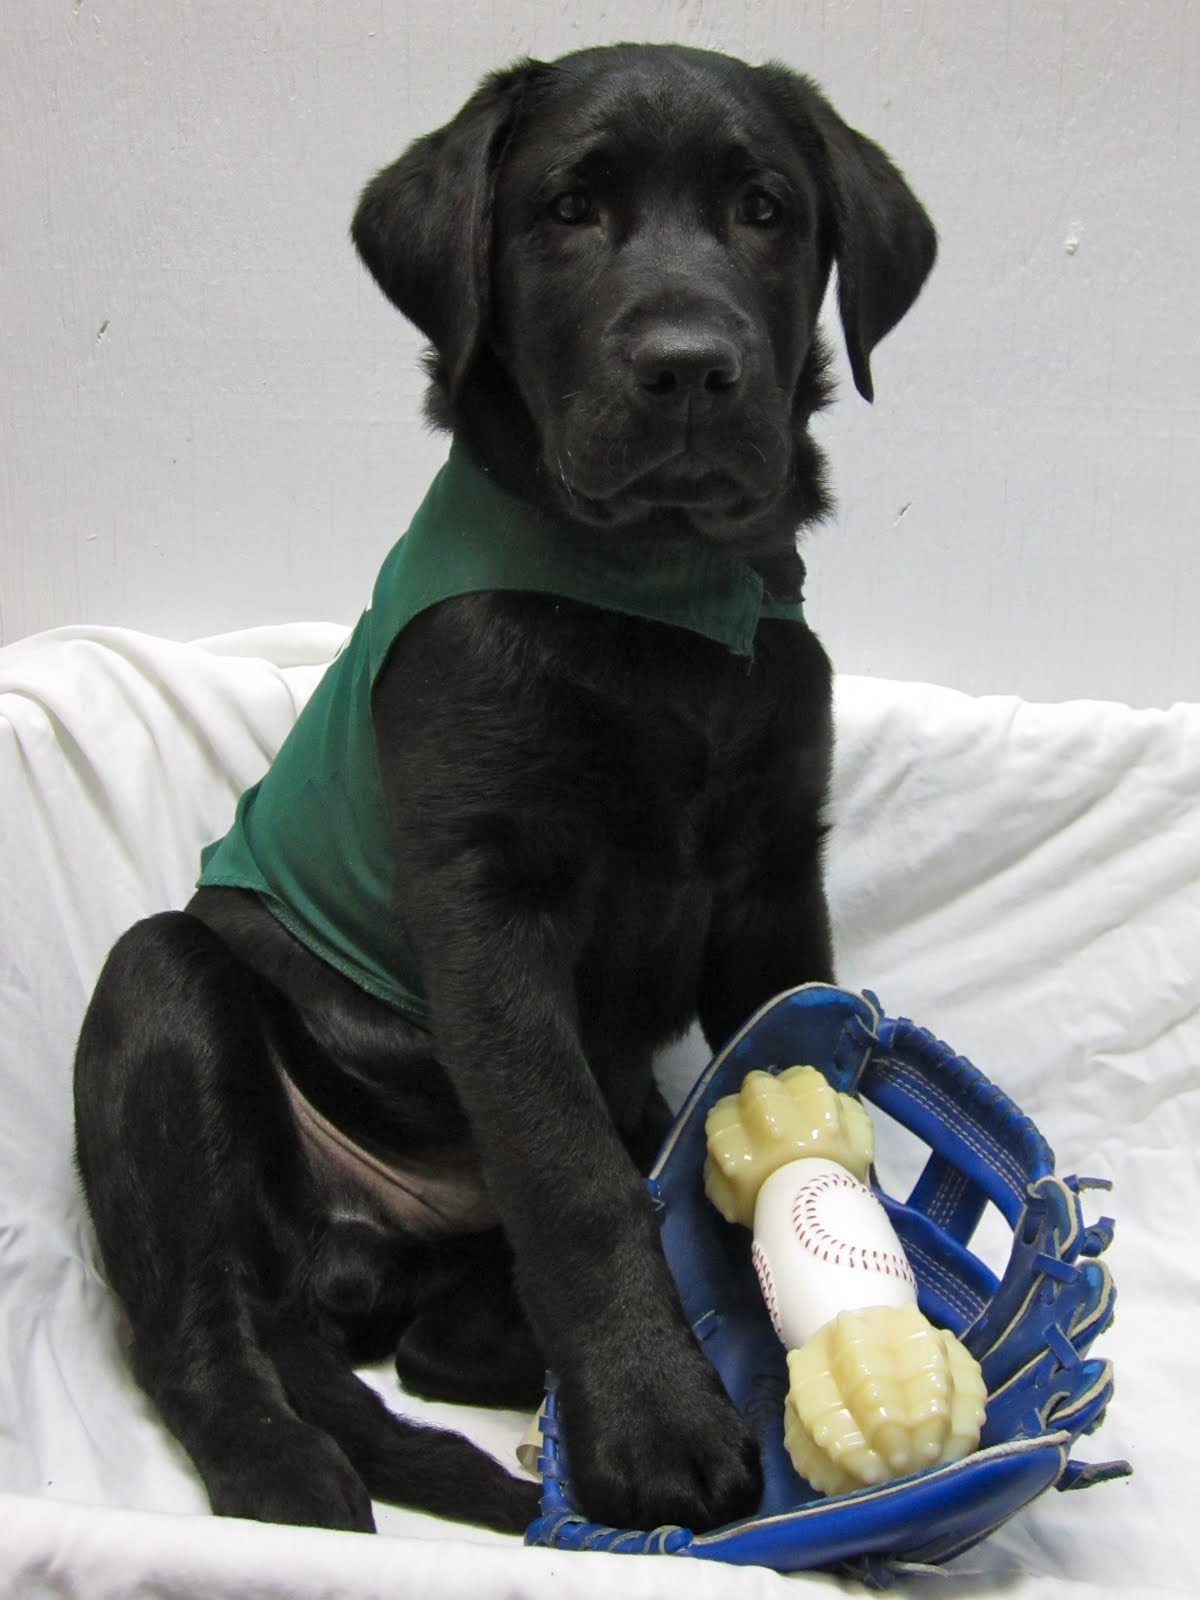 3 month old black lab puppy Romero poses for a picture in his green Future Dog Guide jacket (that is starting to get a little small on him). He is sitting on a platform that is draped with a white sheet, against a white wall. His right front paw rests in the palm of a blue baseball glove in front of him. There is also a large nylabone sitting in the glove. The centre part of the bone is patterned like a baseball (white with red stitching).